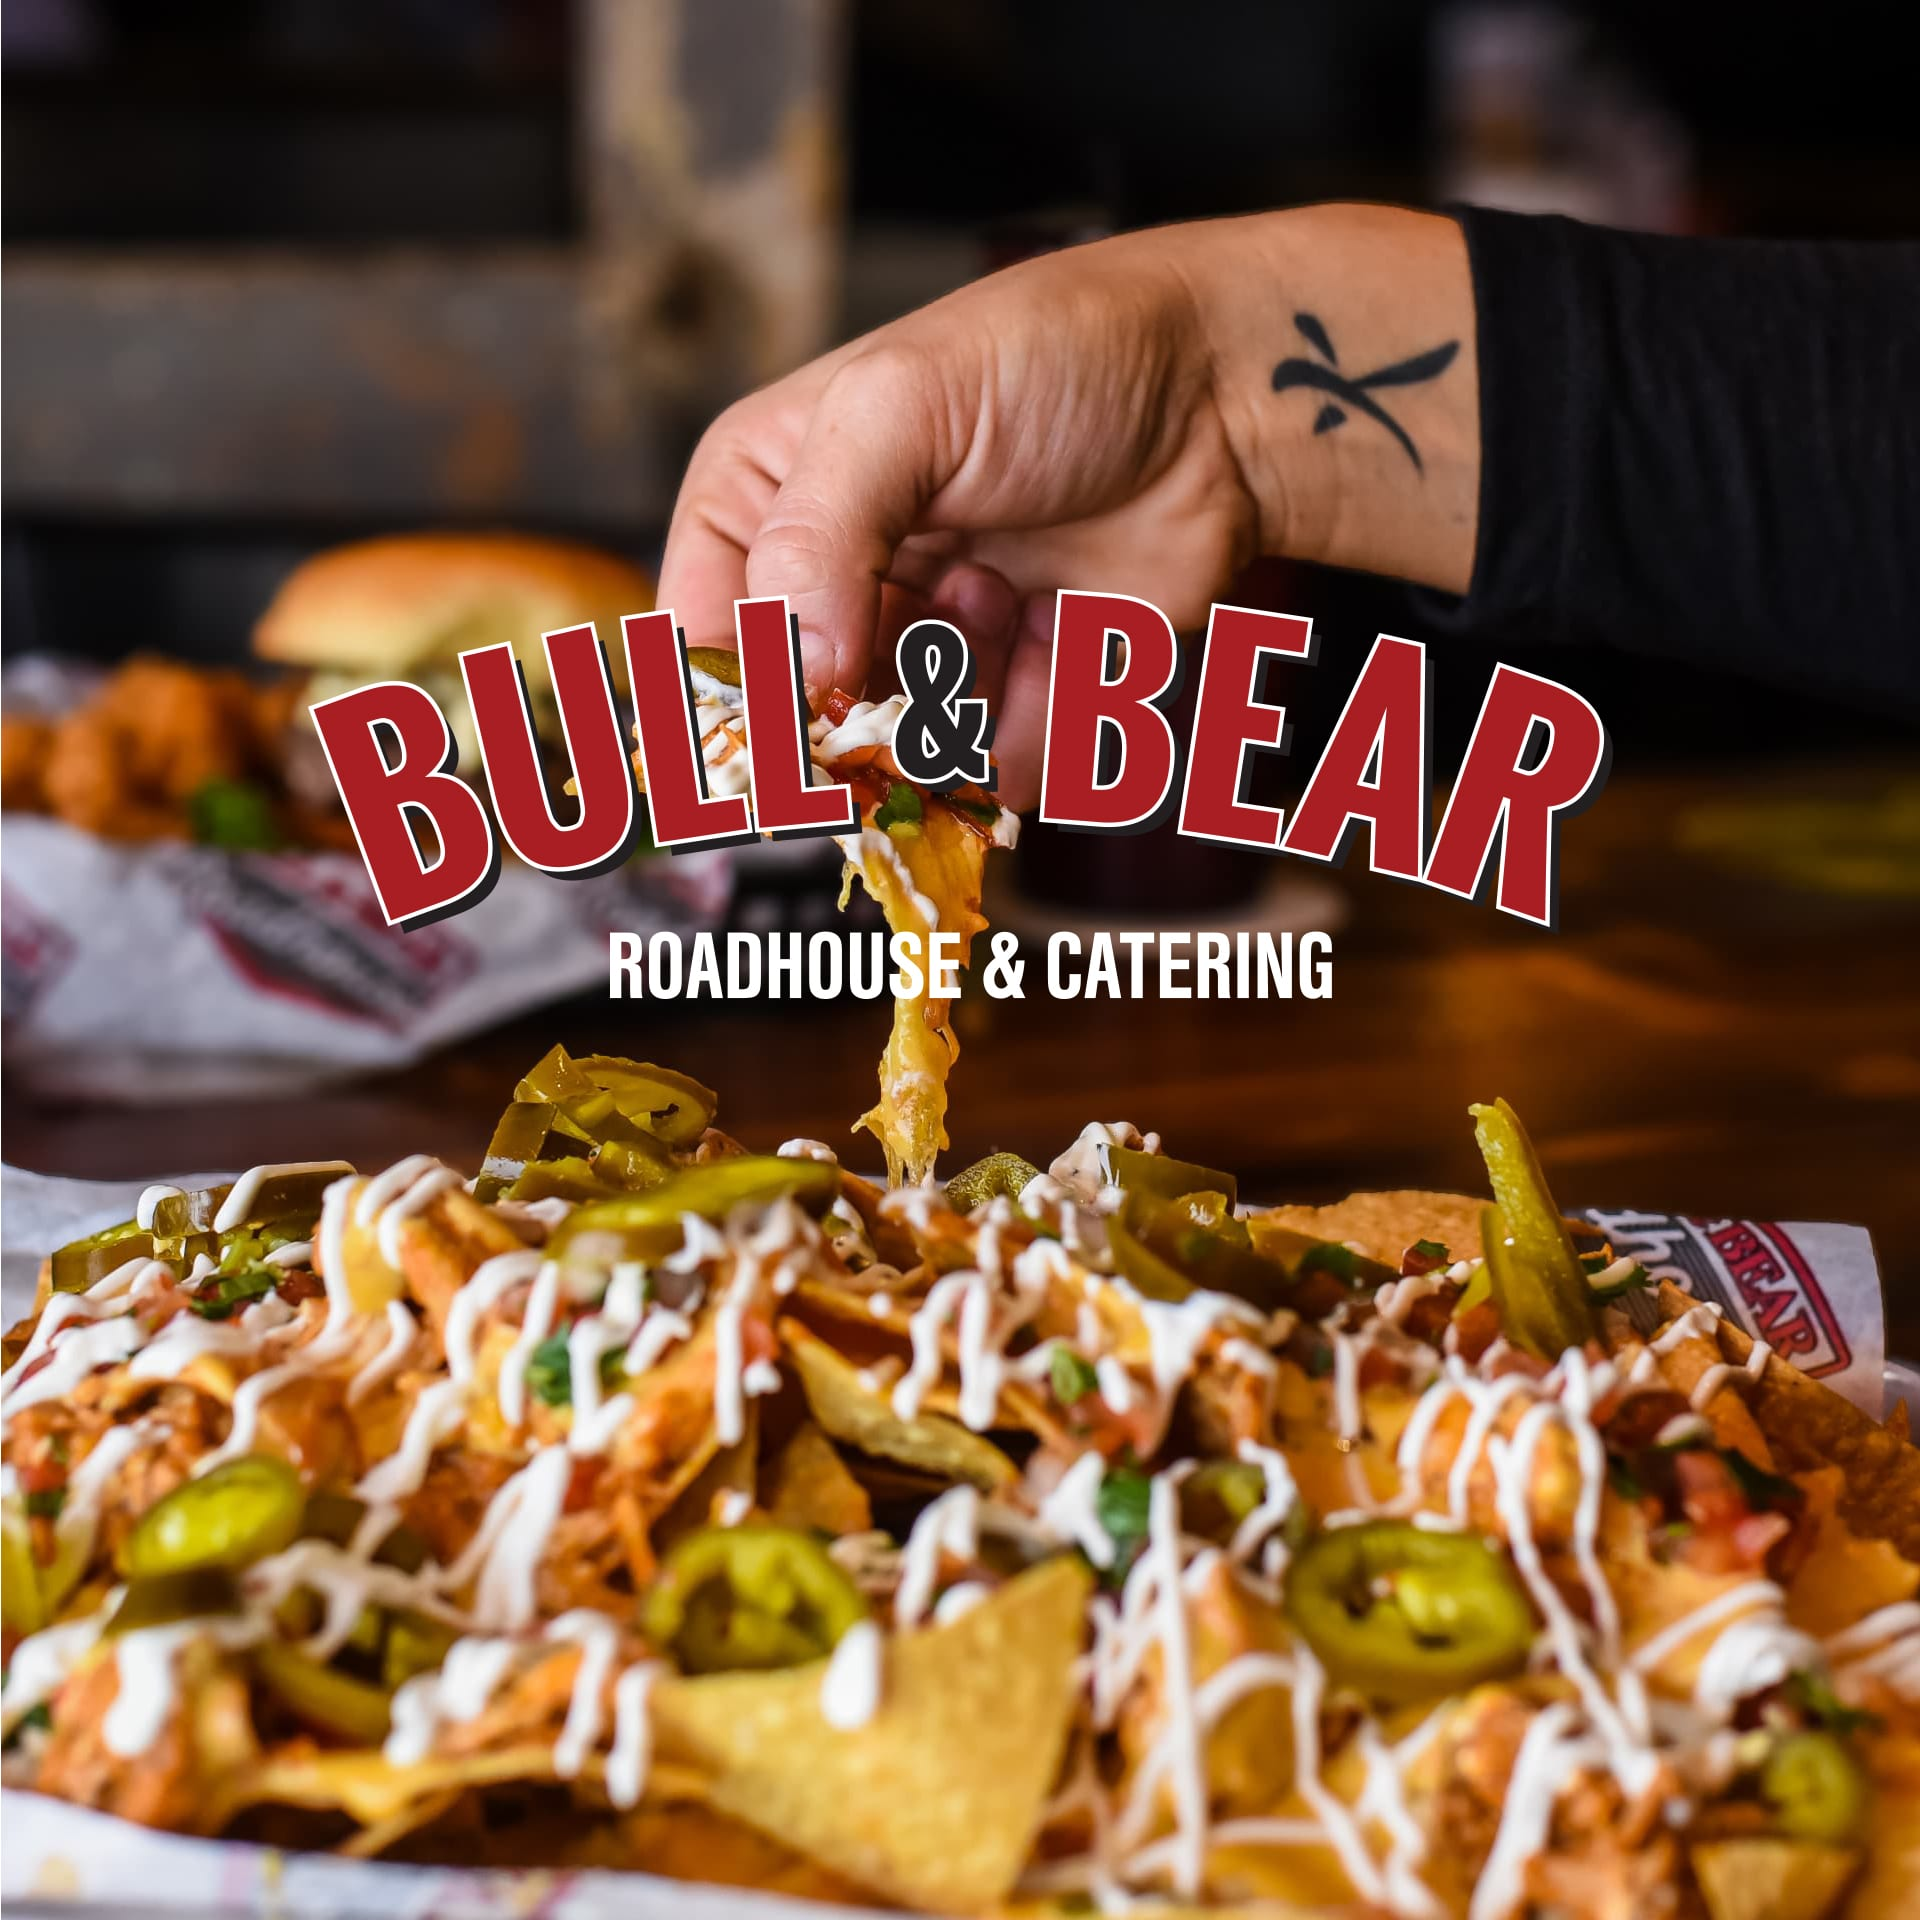 Bull & Bear Roadhouse